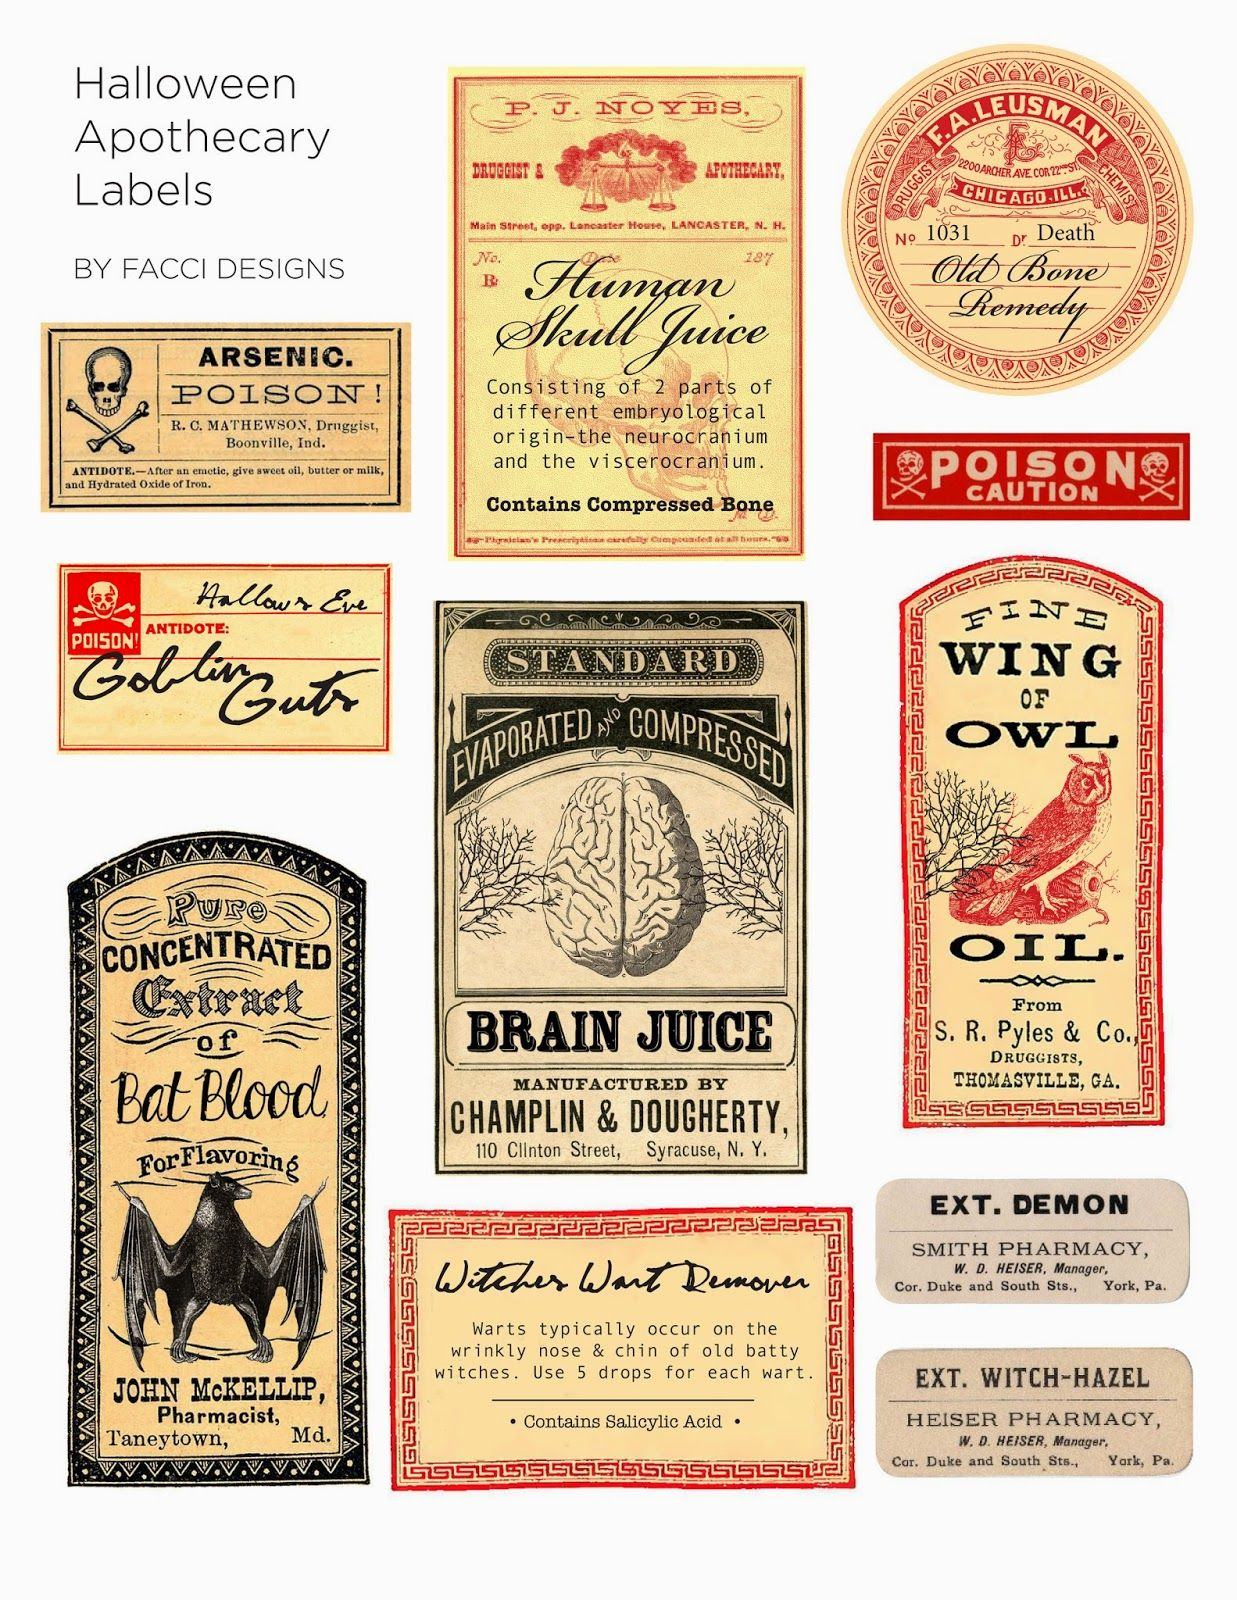 Halloween Love: Spooky Apothecary Labels Free Printable   Halloween - Free Printable Apothecary Jar Labels